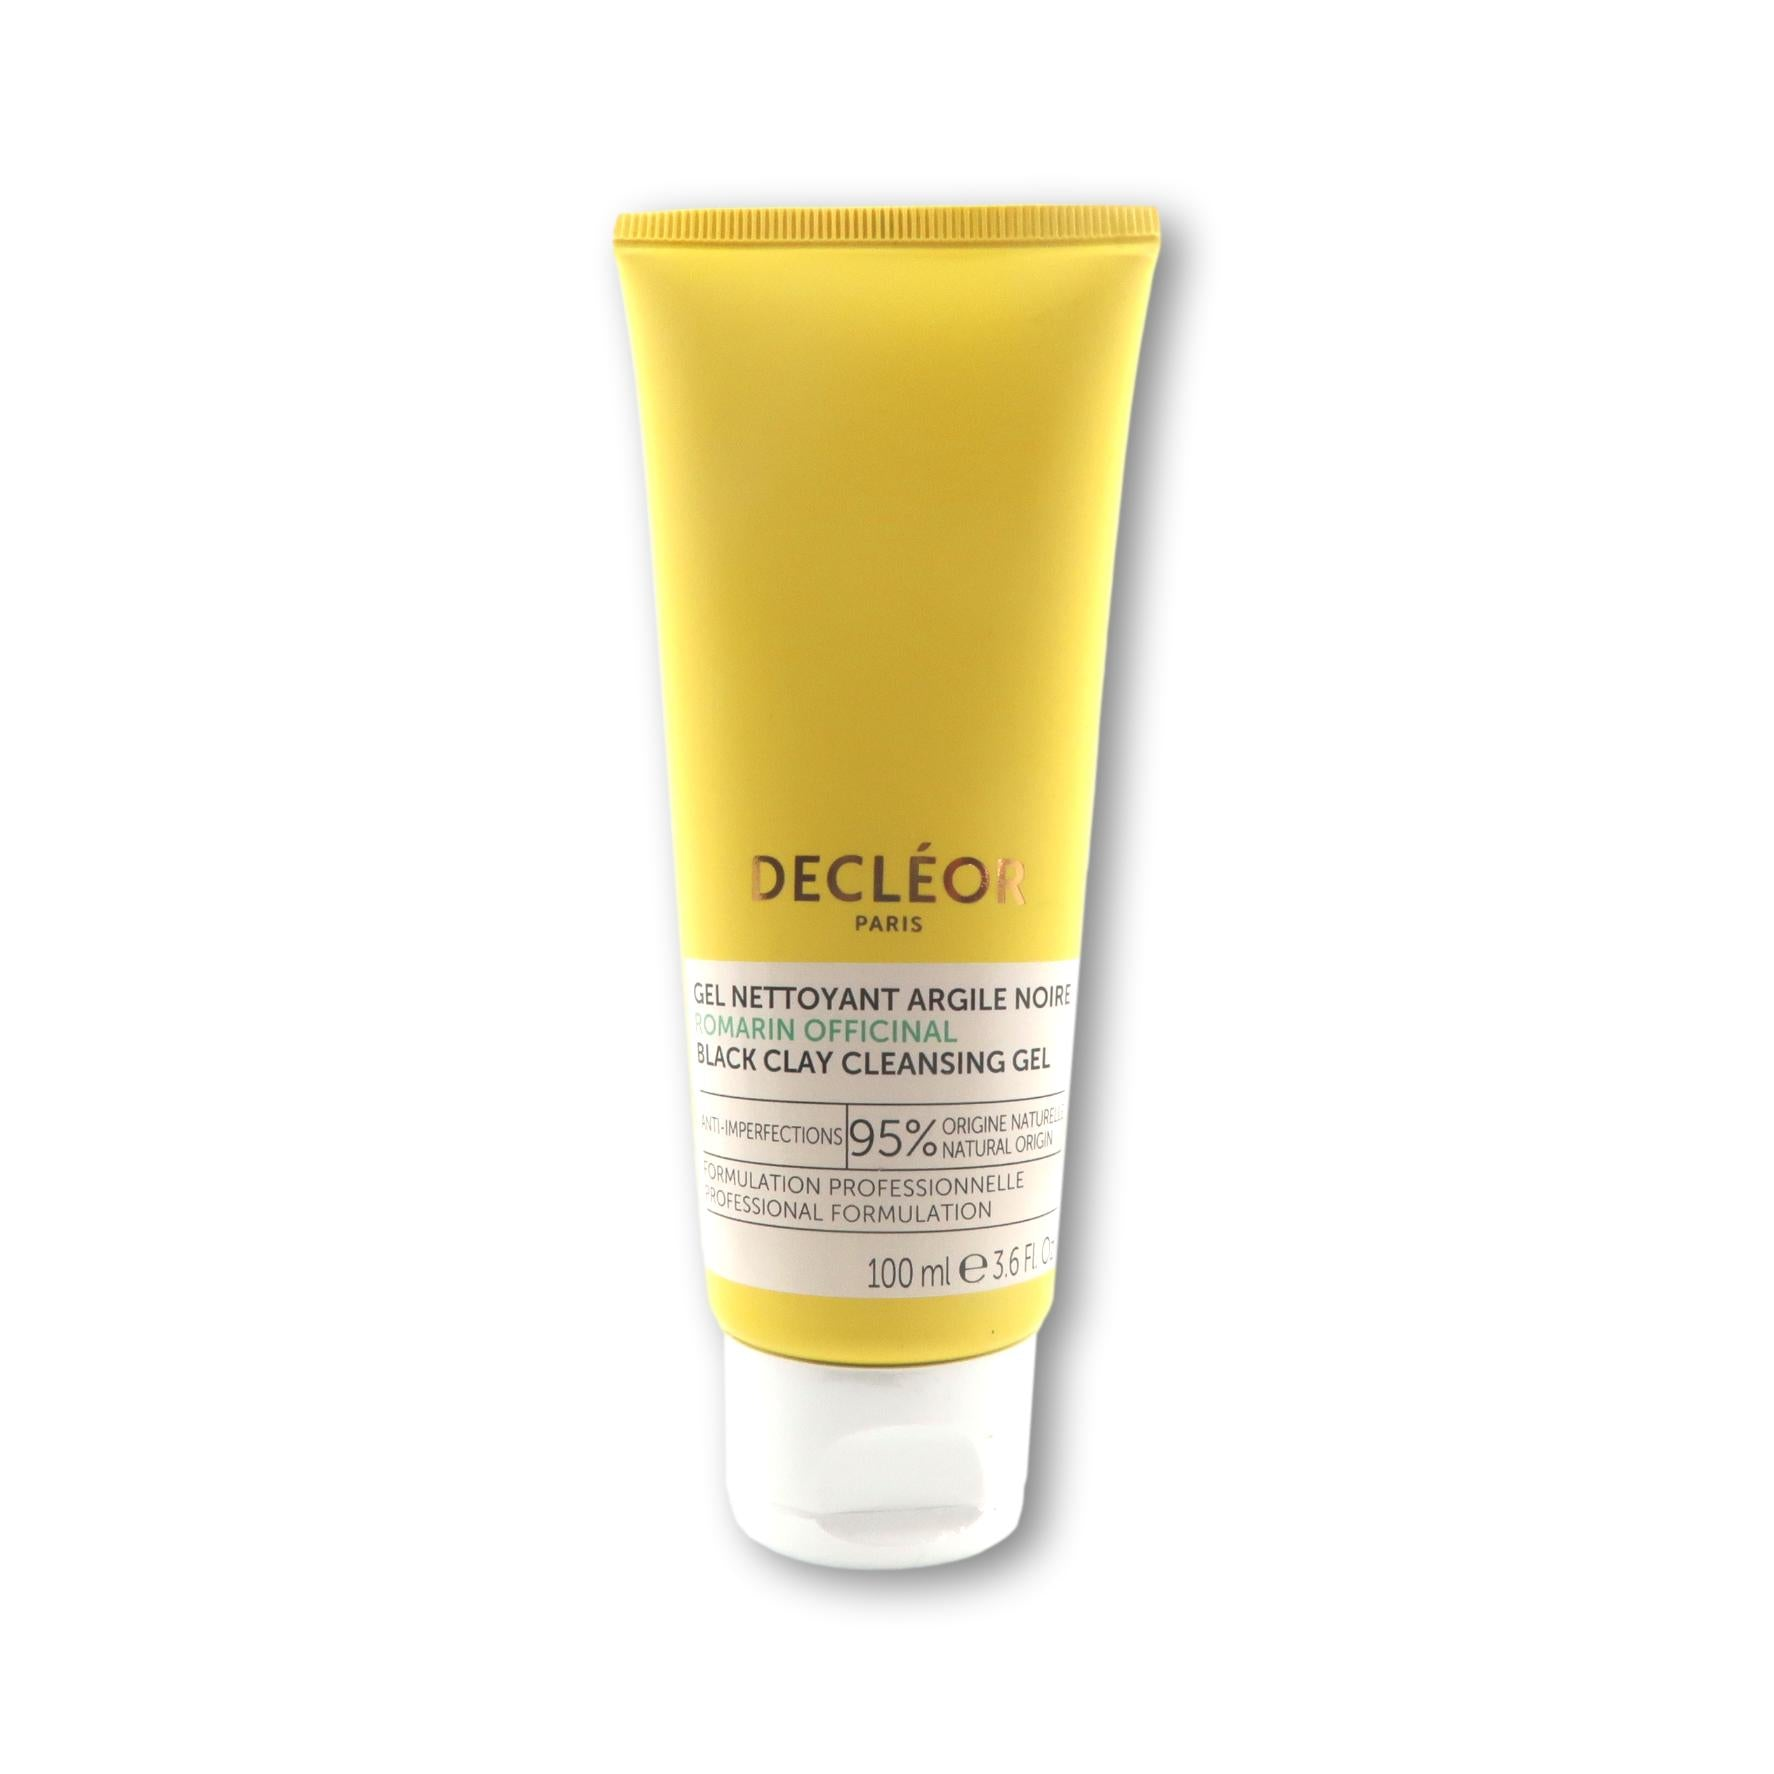 Decleor Black Clay Cleansing Gel 200ml